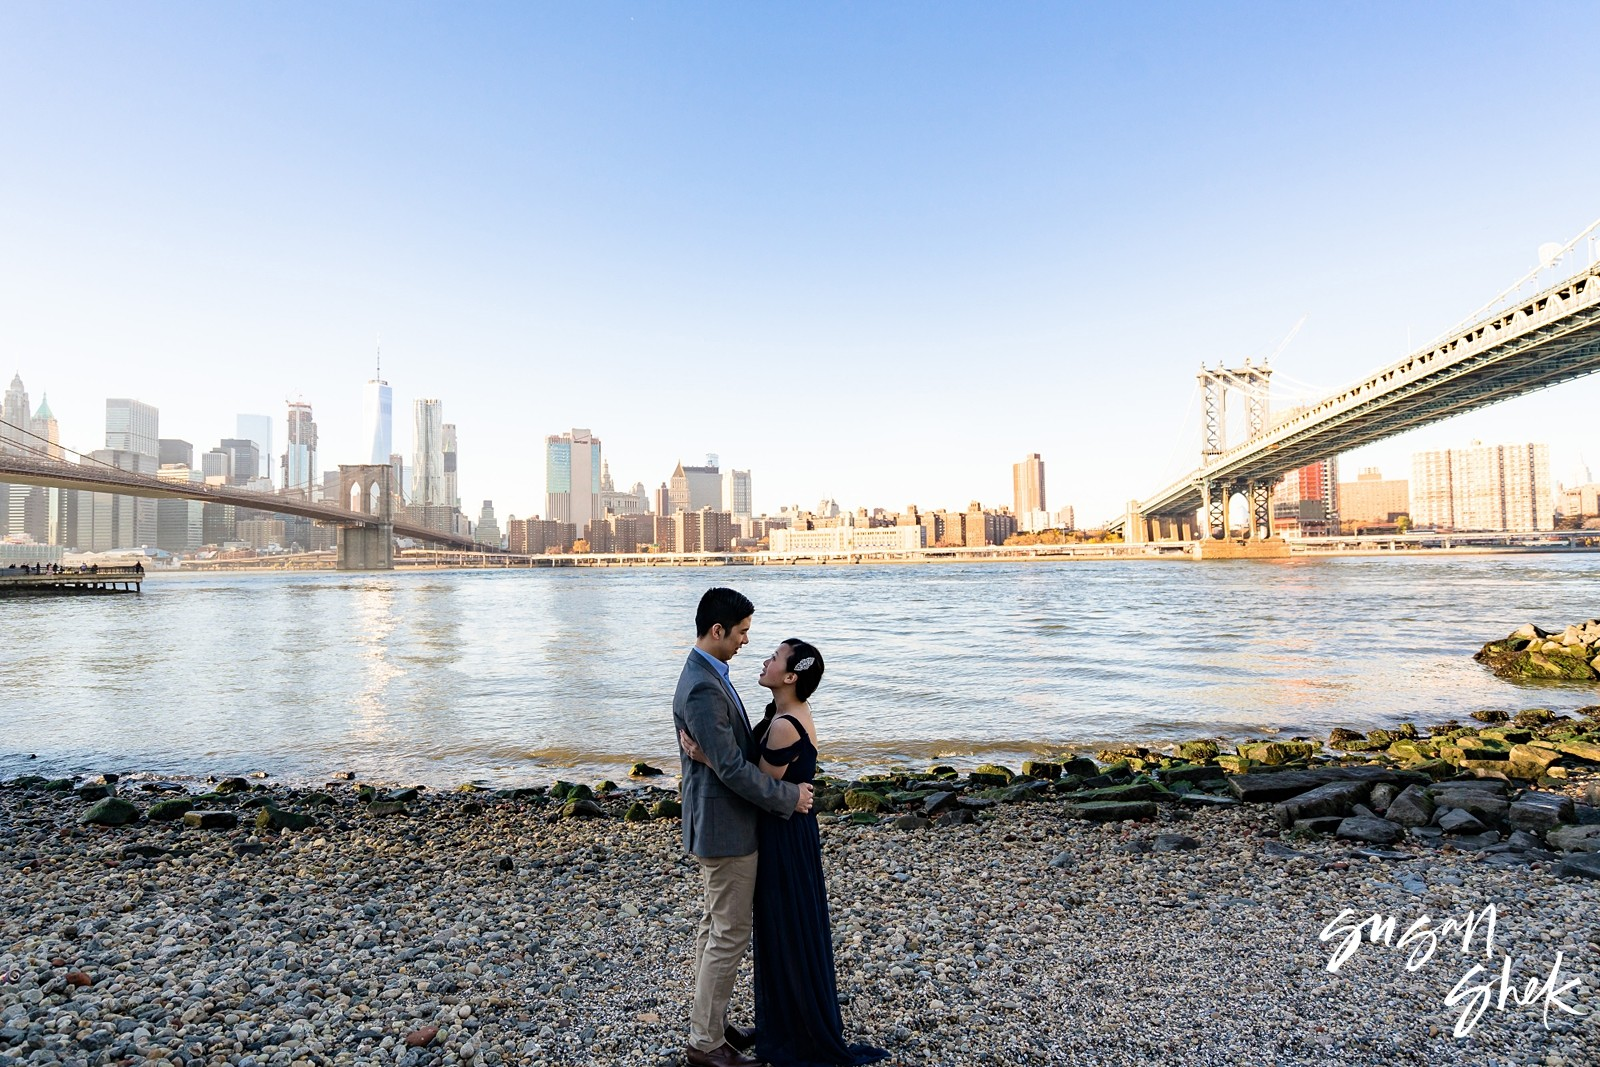 Pebble Beach Engagement Shoot, NYC Engagement Photographer, Engagement Session, Engagement Photography, Engagement Photographer, NYC Wedding Photographer